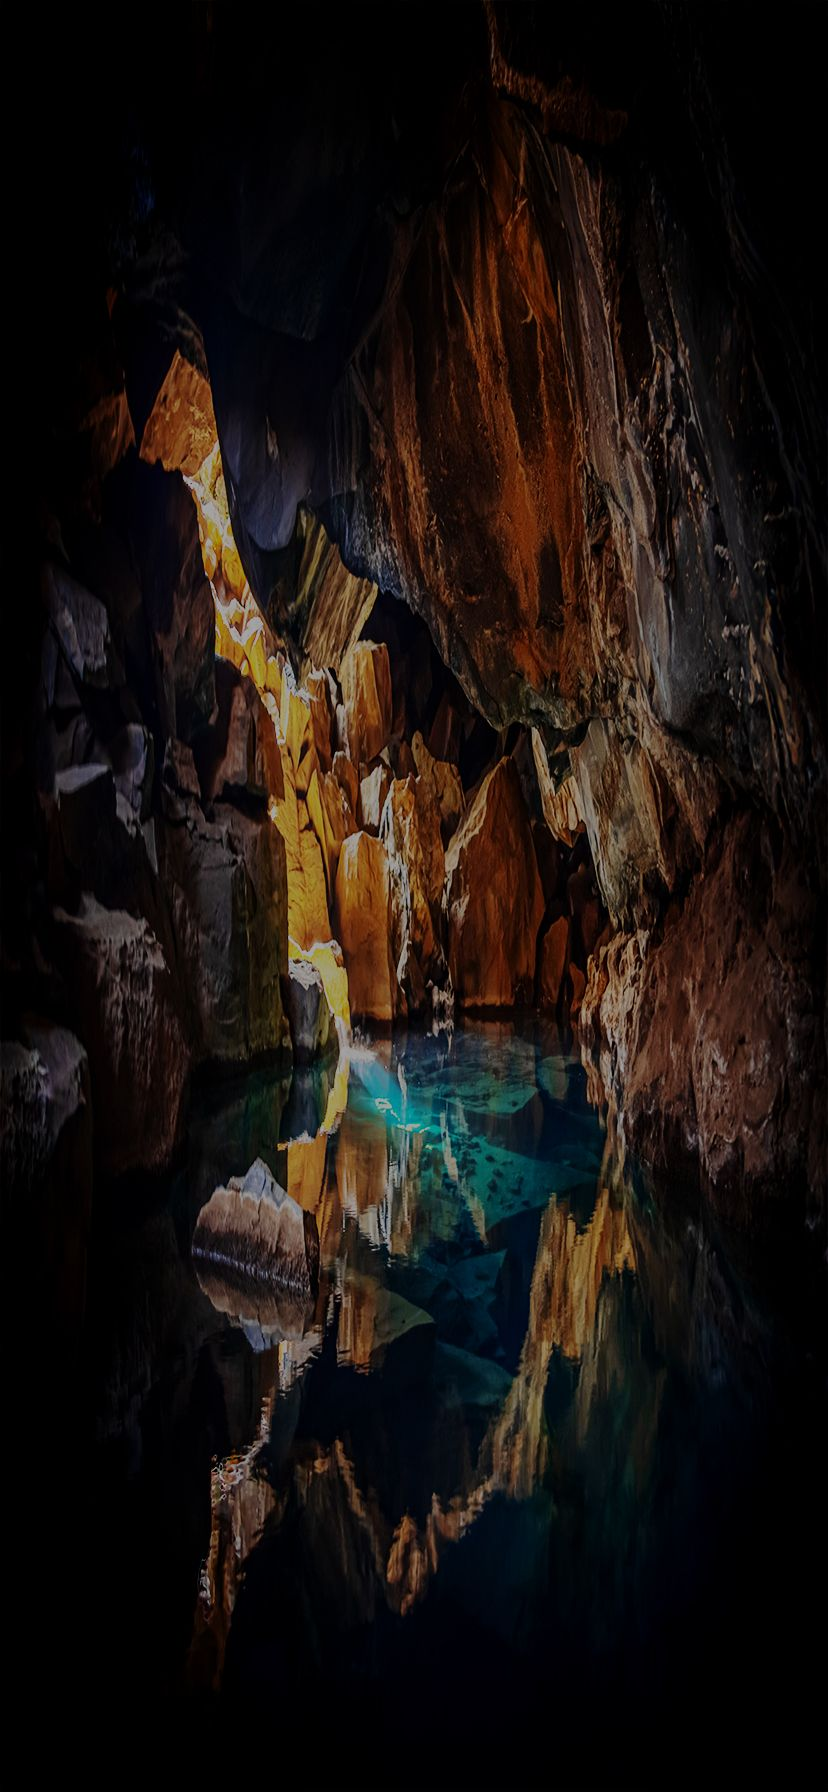 Wallpaper Cave Background HD Full Screen Free Download in